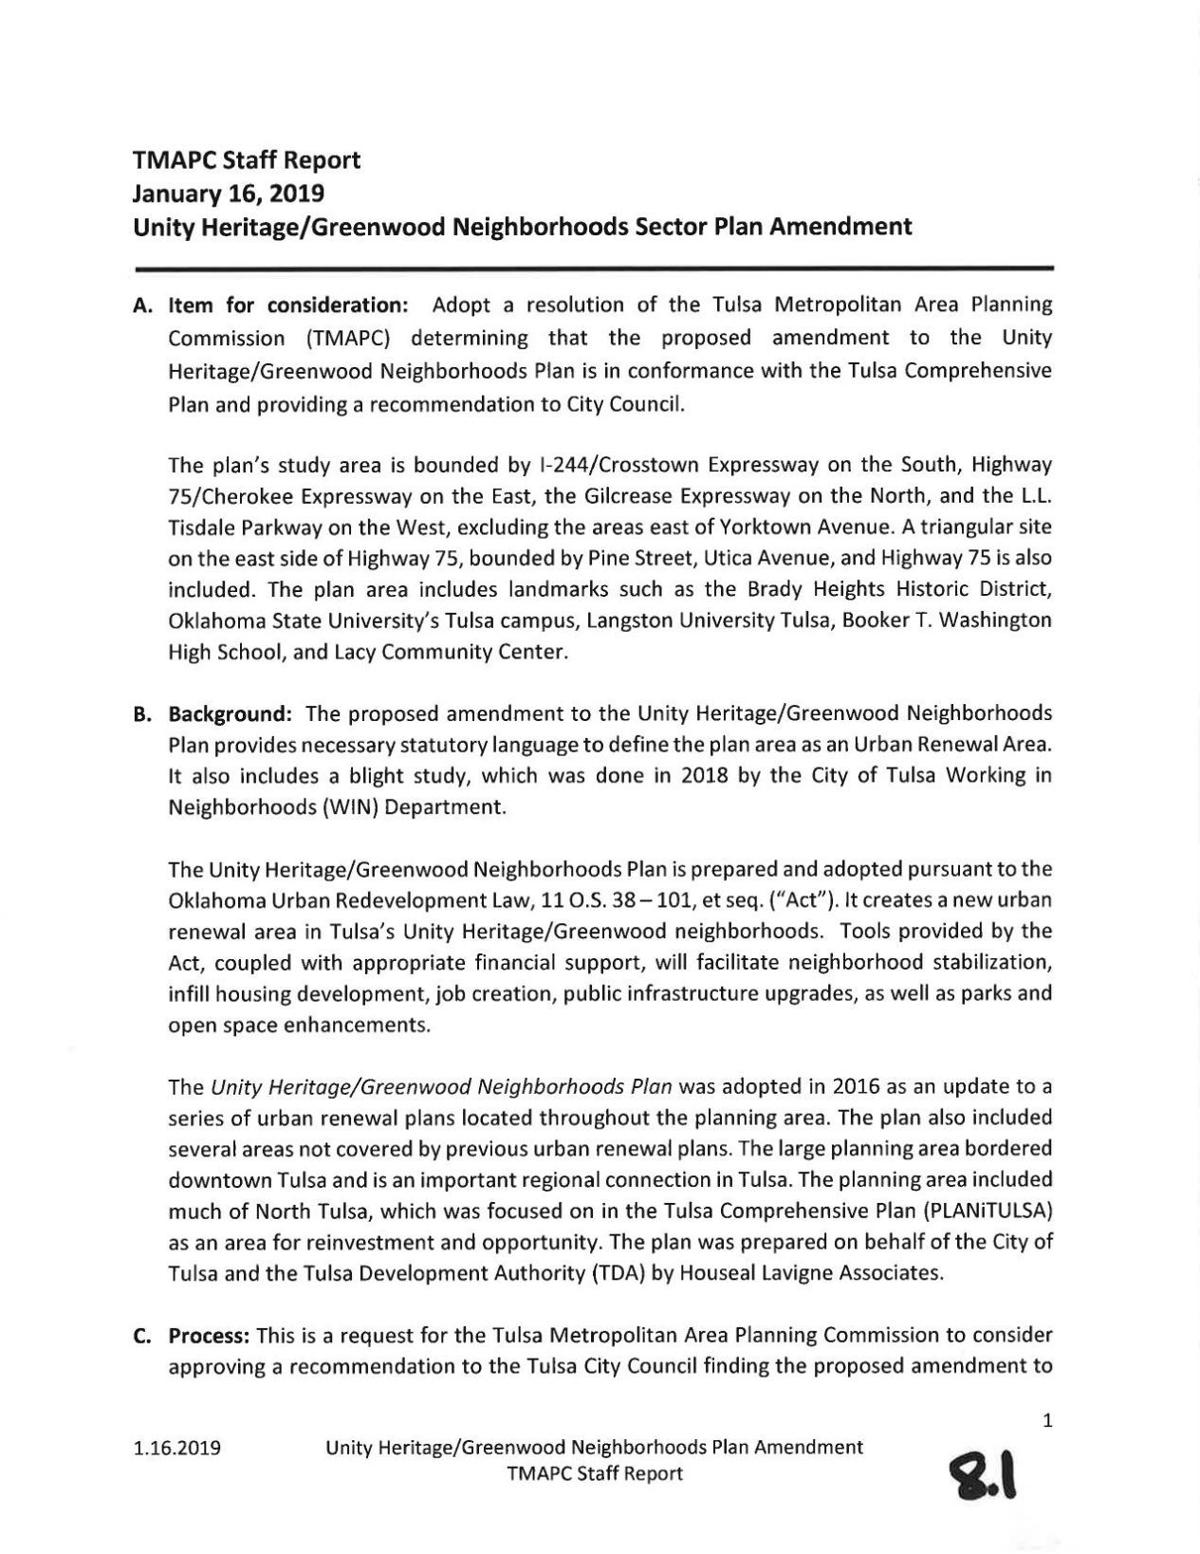 Unity Heritage/Greenwood Neighborhoods Sector Plan Amendment